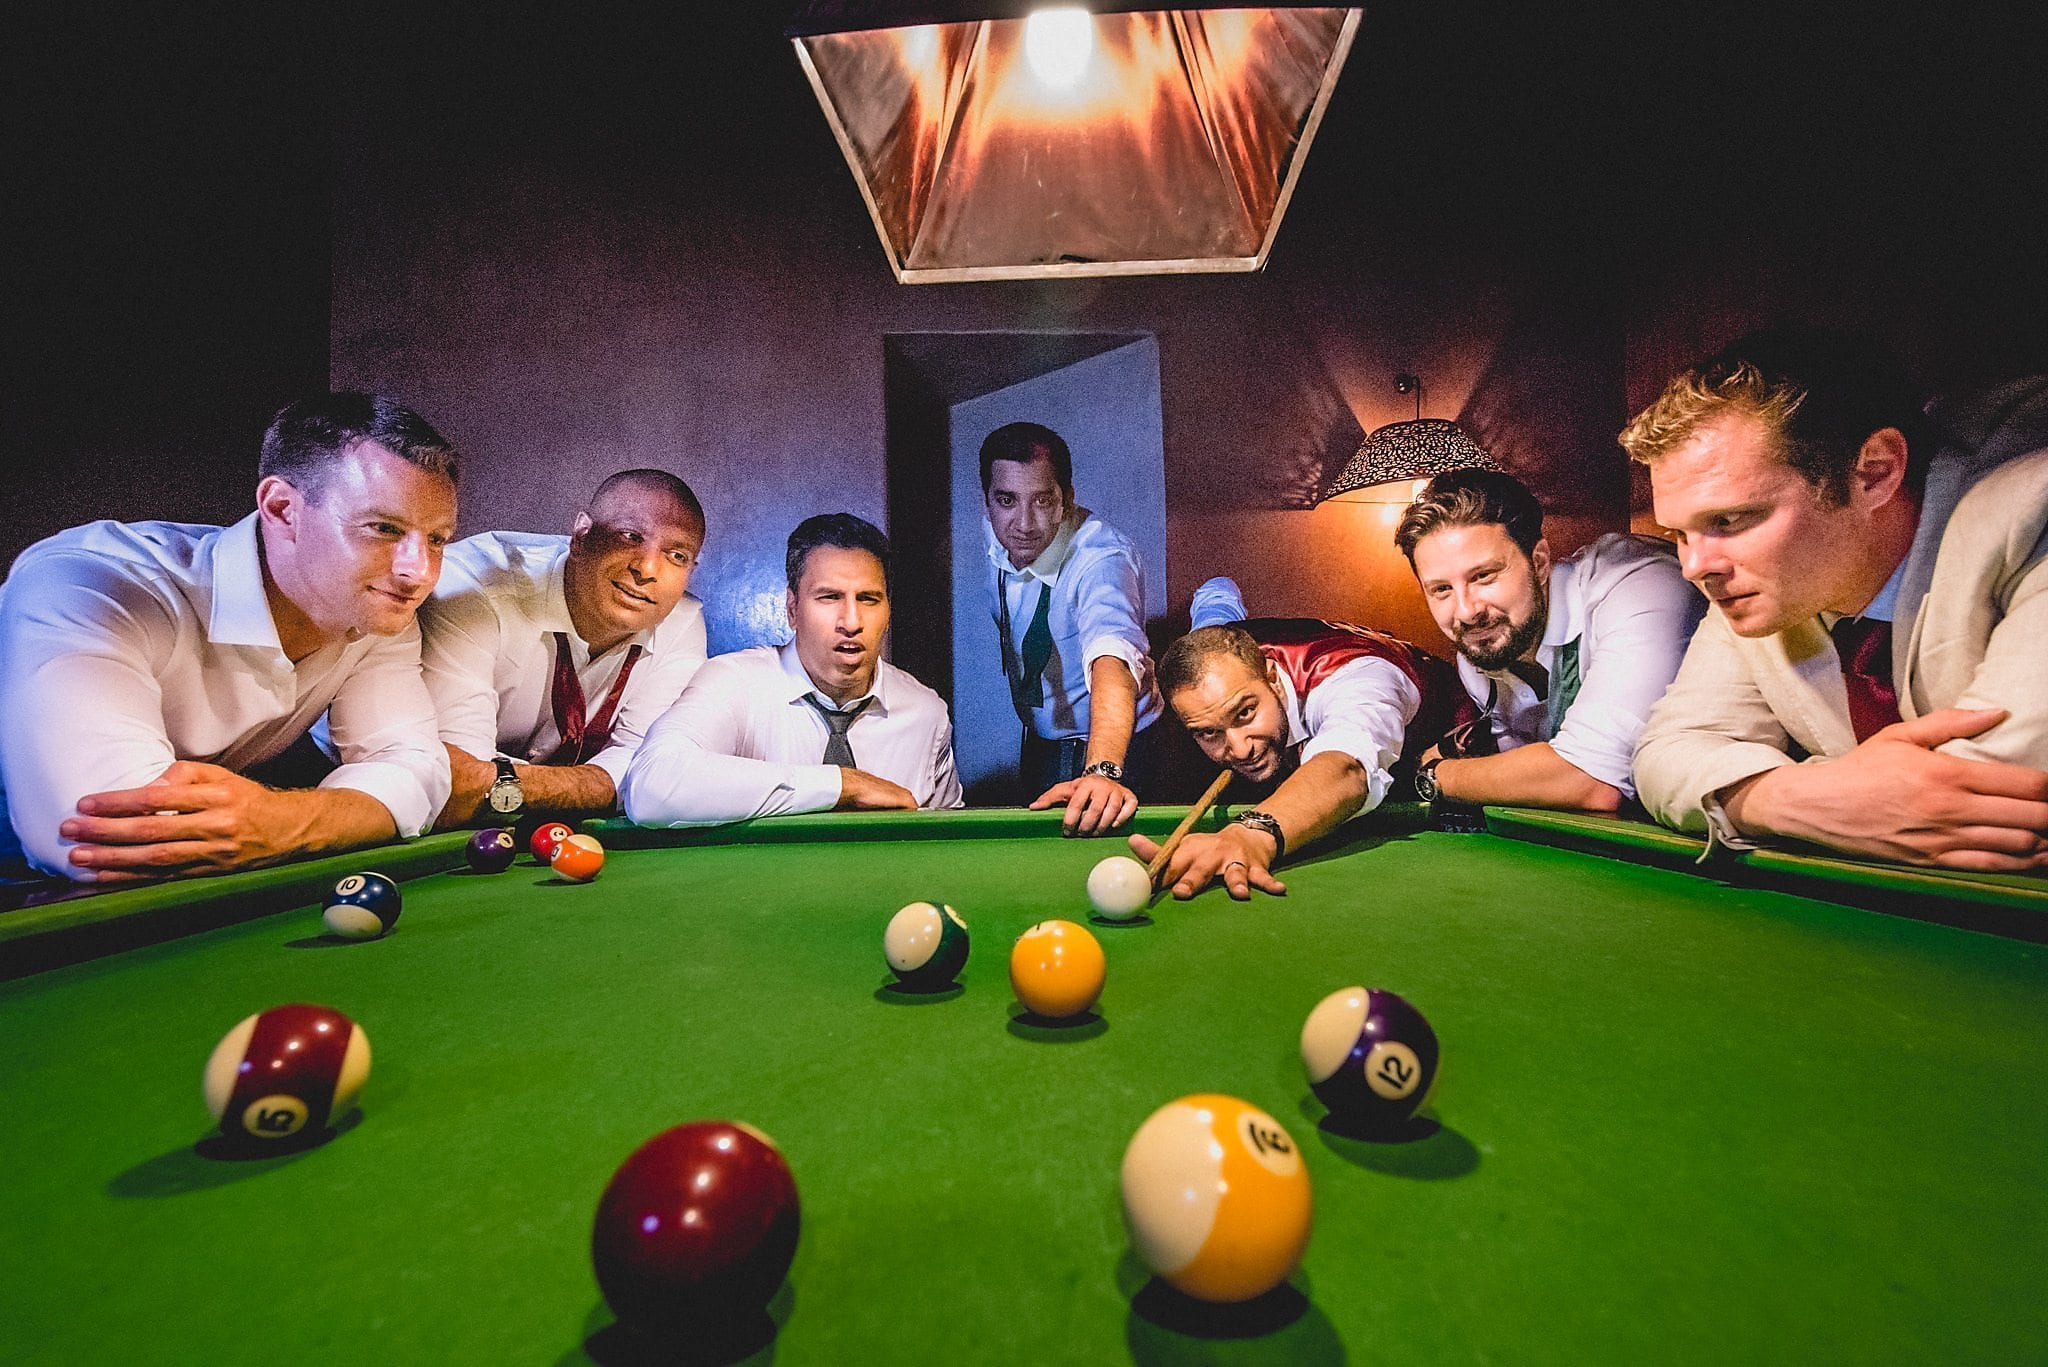 Groom and groomsmen play pool at their destination wedding at Morocco's Ksar Char Bagh